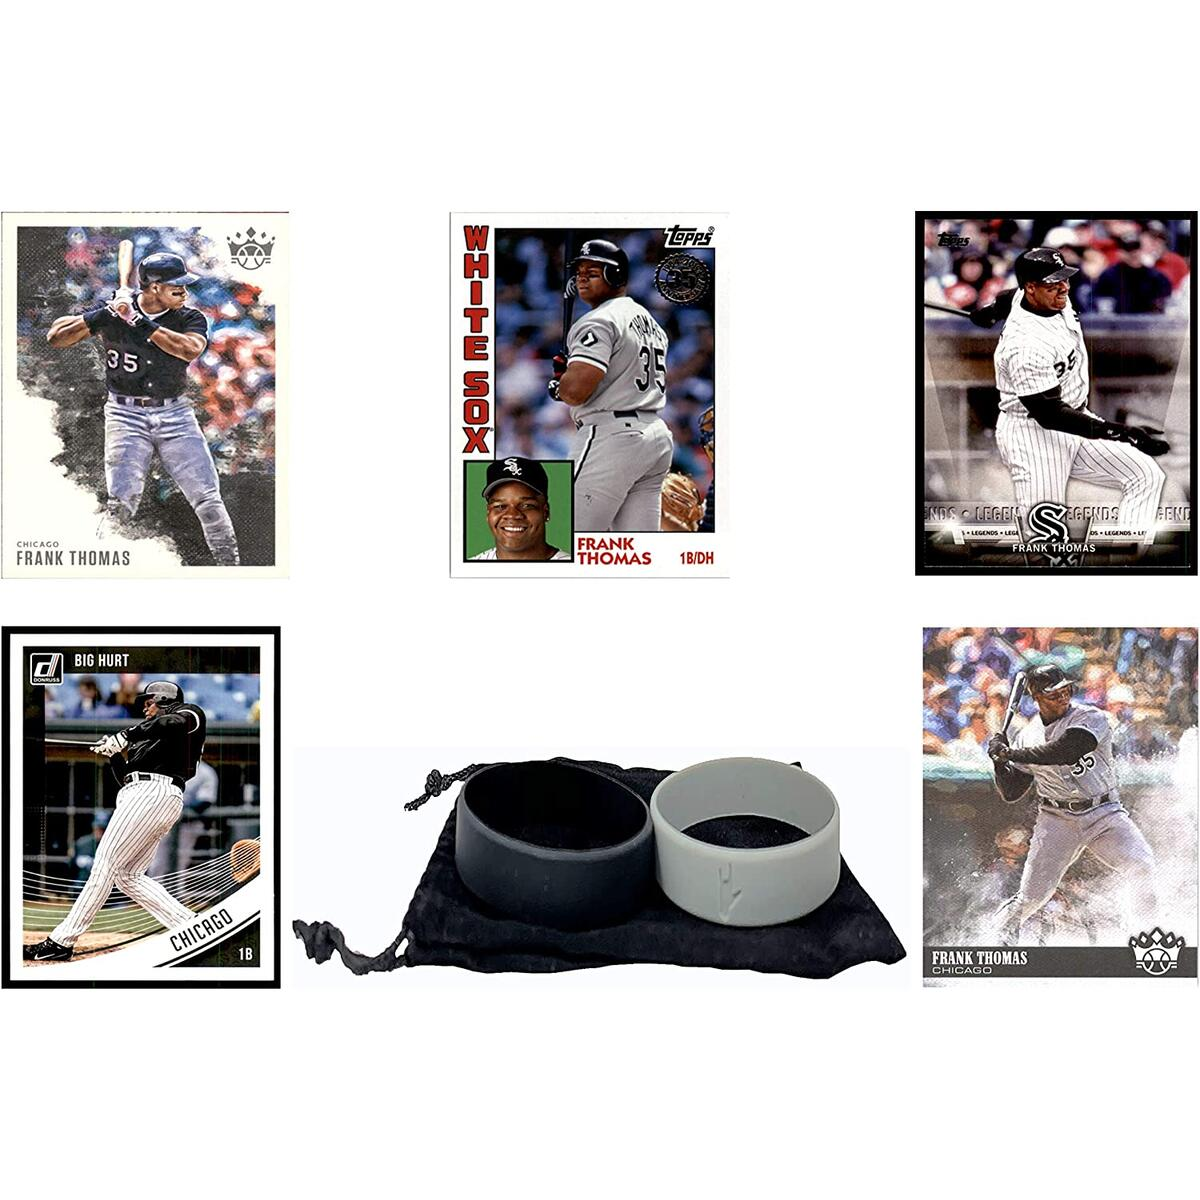 Frank Thomas Baseball Cards (5) ASSORTED Chicago White Sox Trading Card and Wristbands Gift Bundle